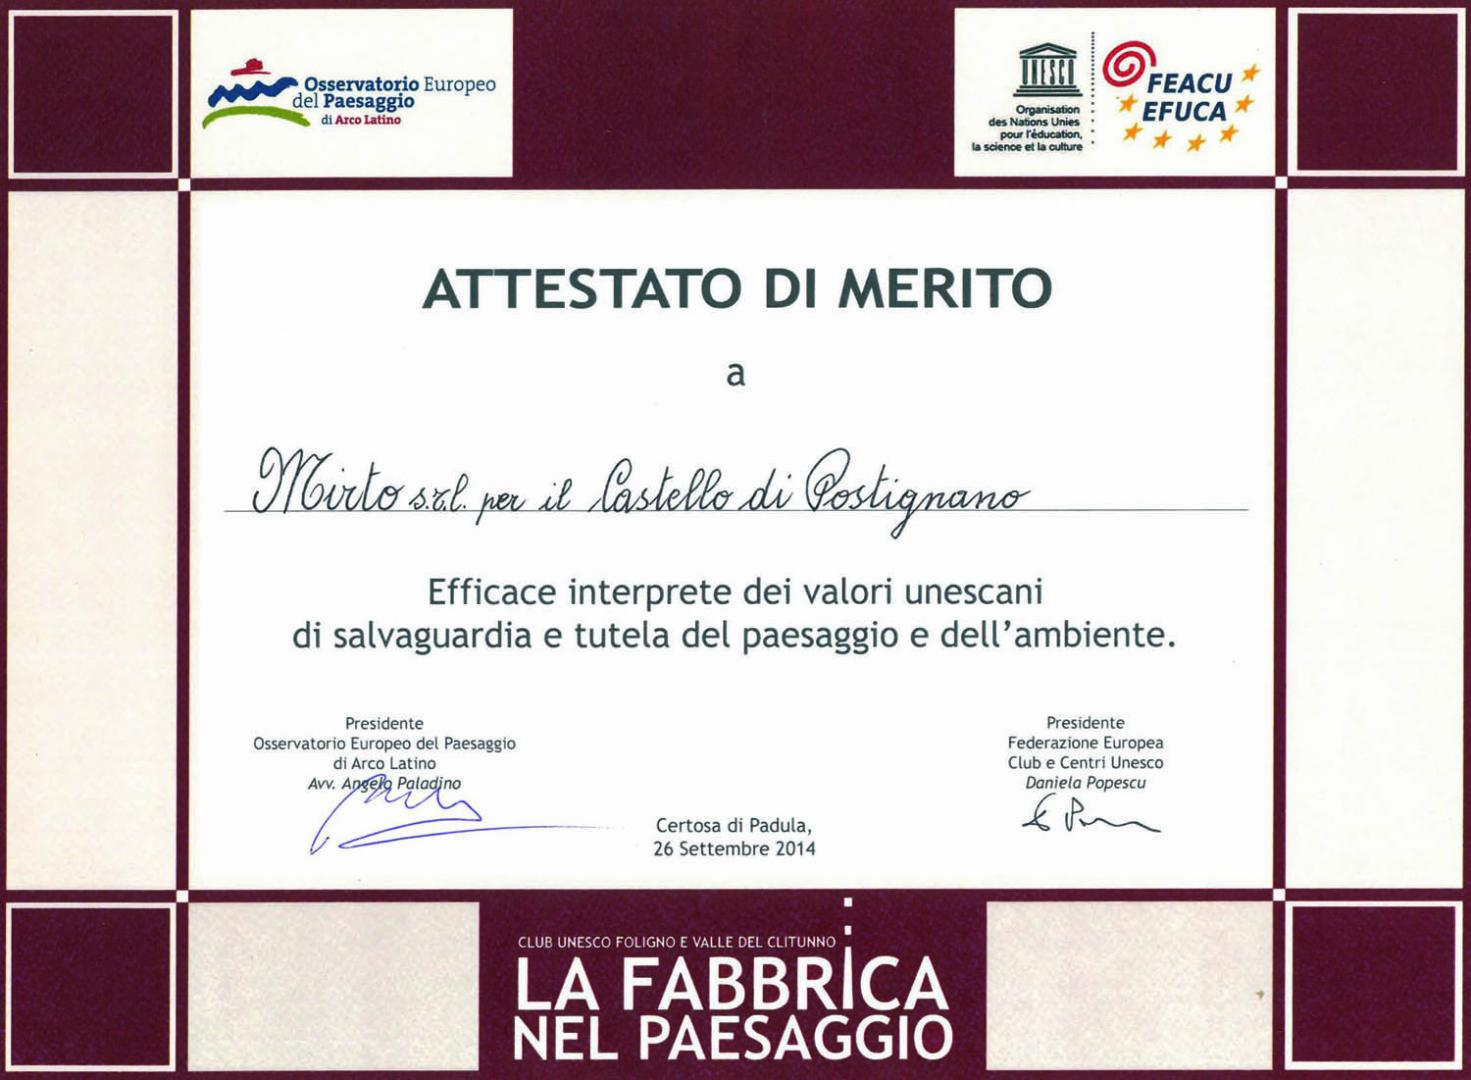 Certificate of Merit from the Italian and European Federations of UNESCO Clubs and Centres